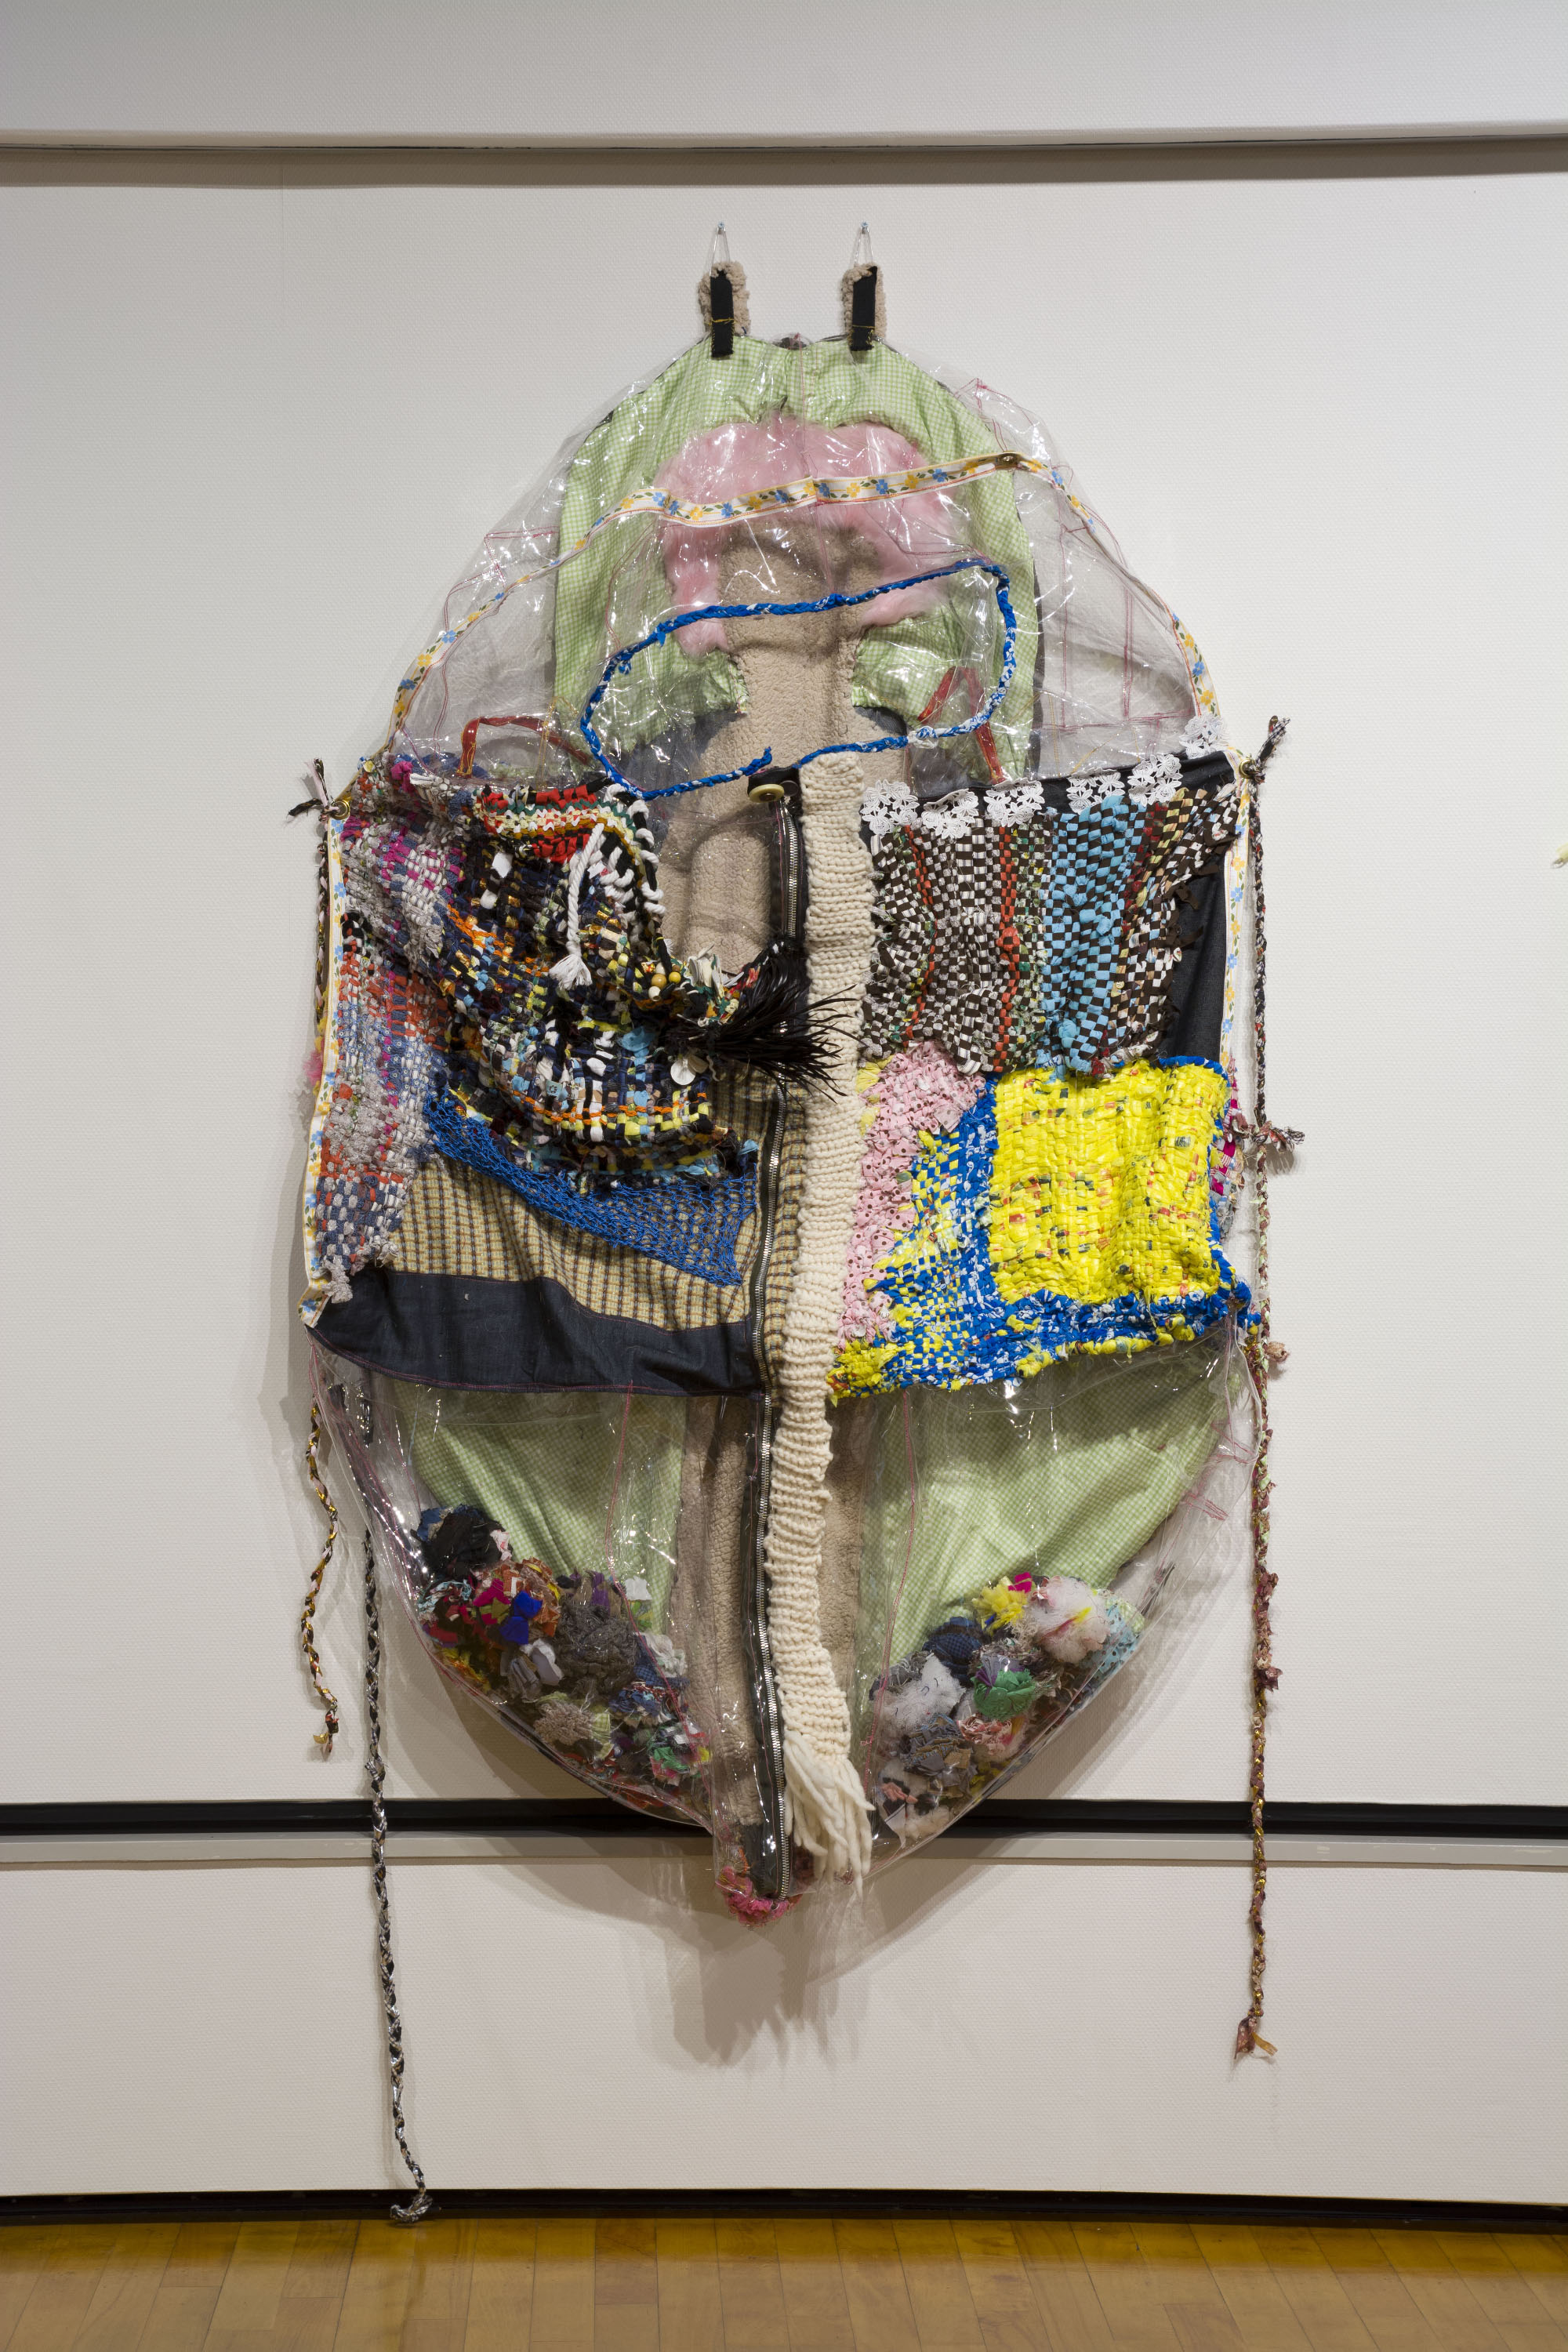 "Queen's Cocoonbag, Mixed media , 84""x48""x42"", 2013  A part of the installation,  Runningaway Furoshiki   Photographed by Hideto Nagatsuka"